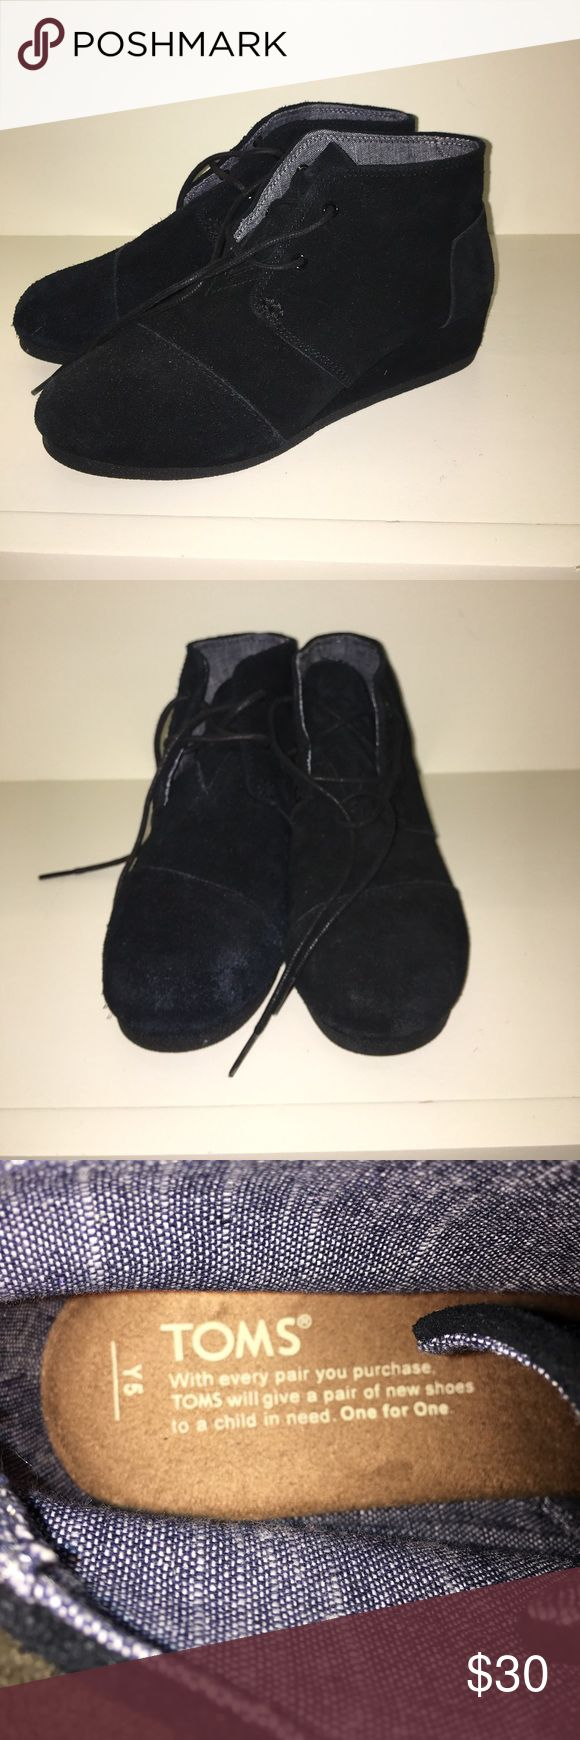 Youth Tom Wedges Barely Worn (Y4 = Women's 6) Black suede Tom wedges in size youth 4 (women's 6), barely worn. Toms Shoes